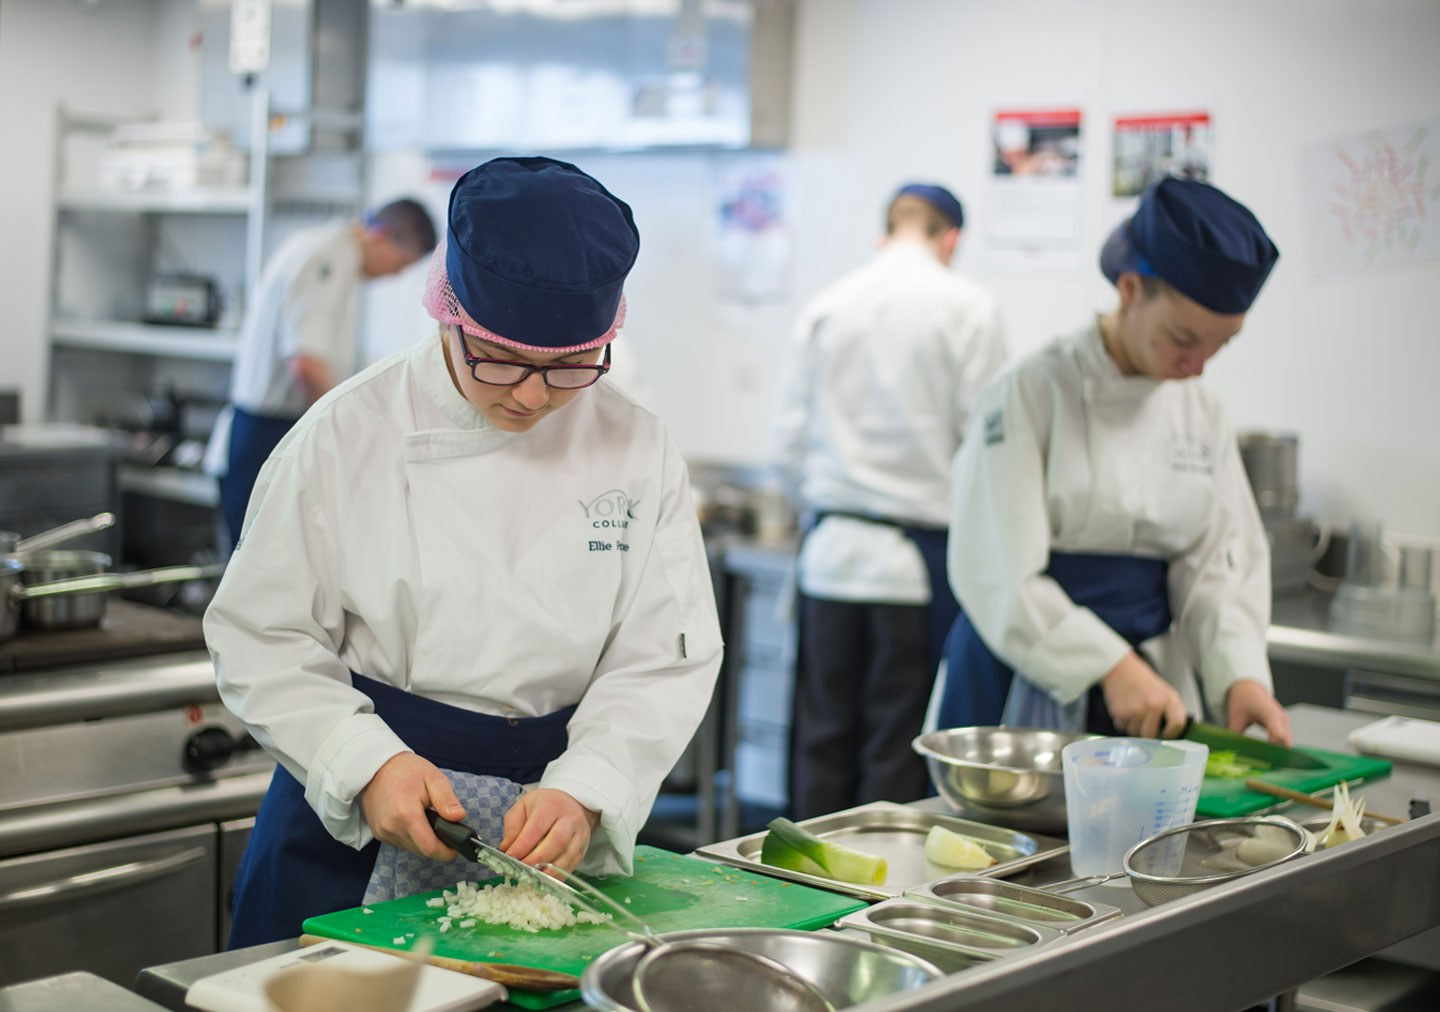 Professional Cookery students working in the training kitchen